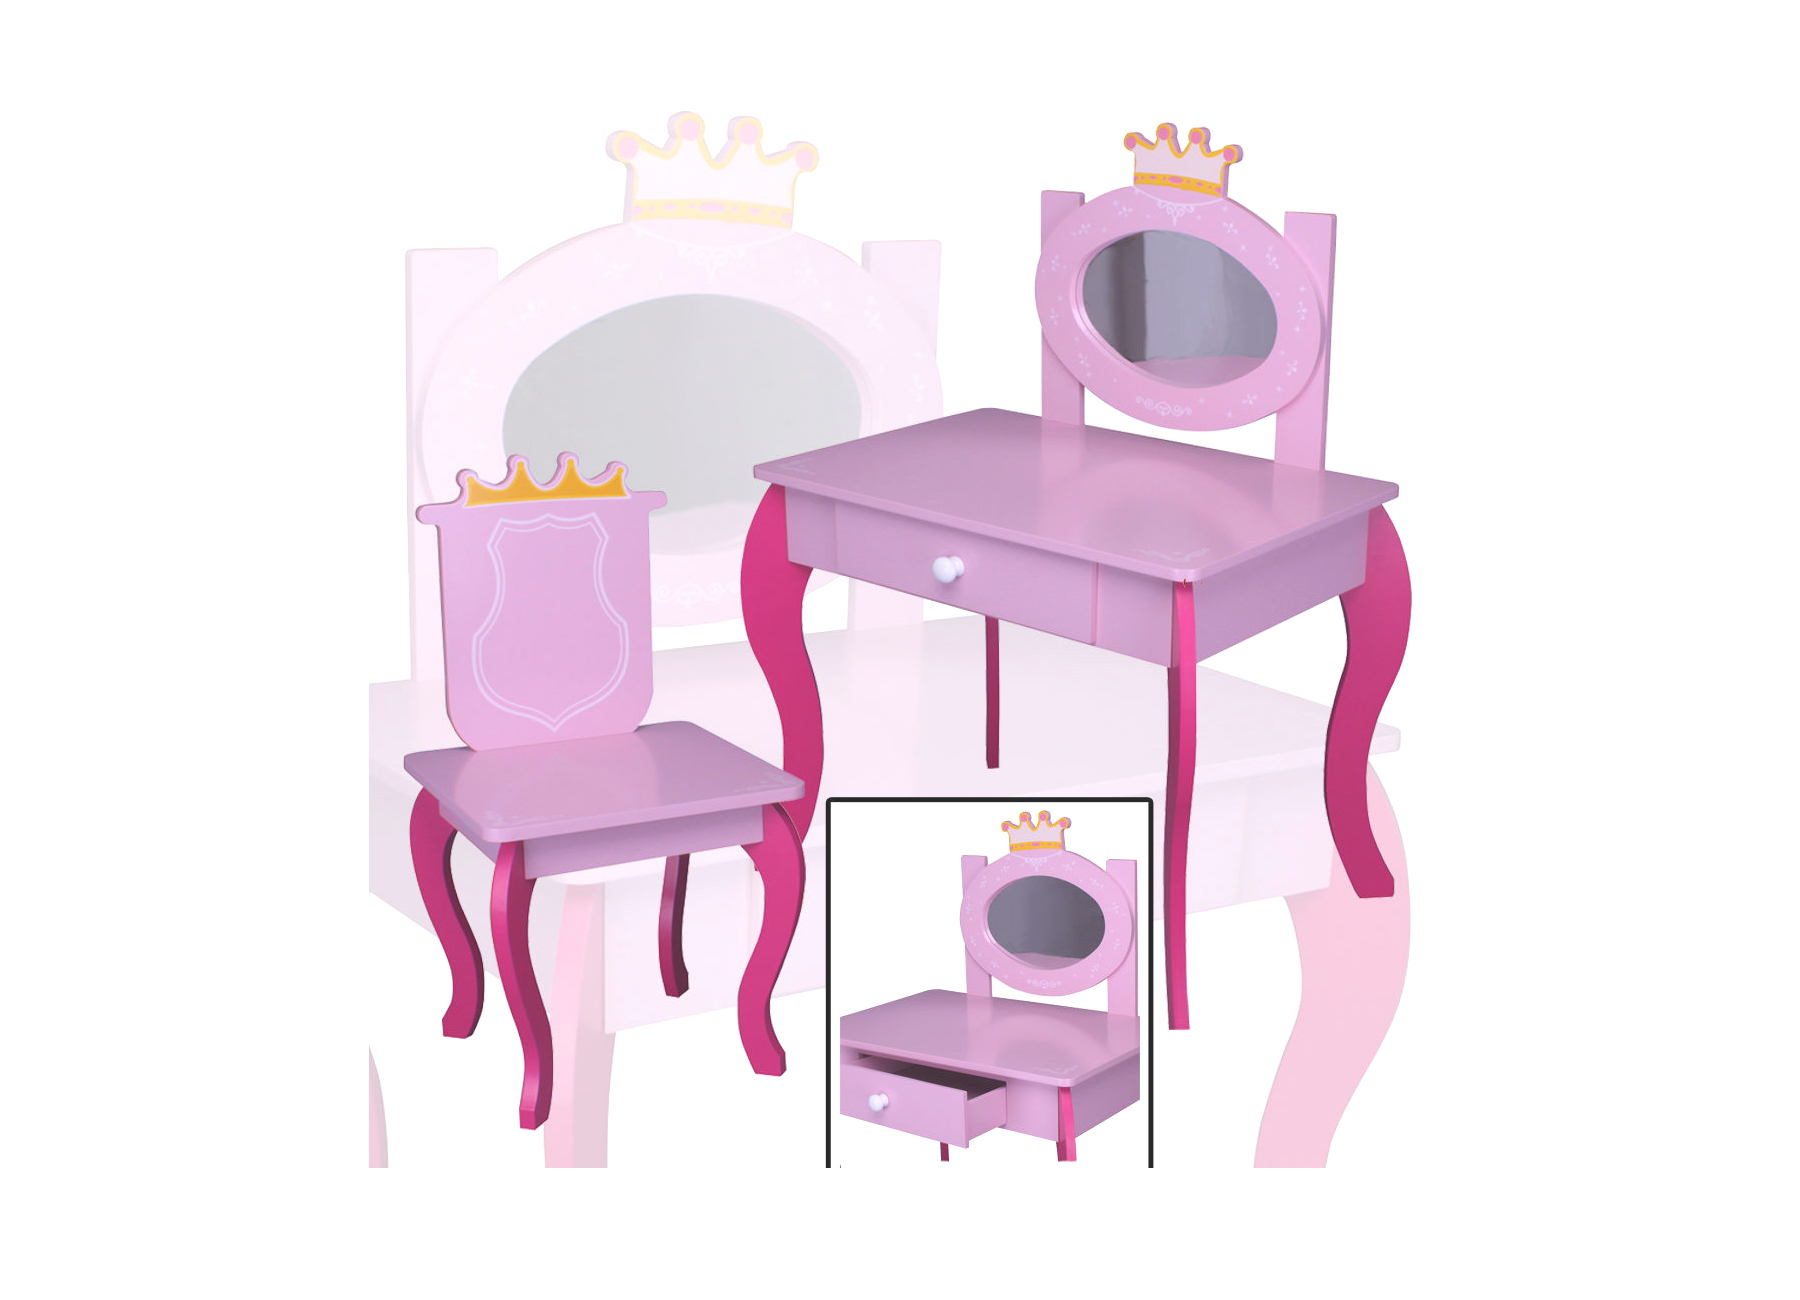 kinder schminktisch 120 pink rosa spiegel frisiertisch. Black Bedroom Furniture Sets. Home Design Ideas